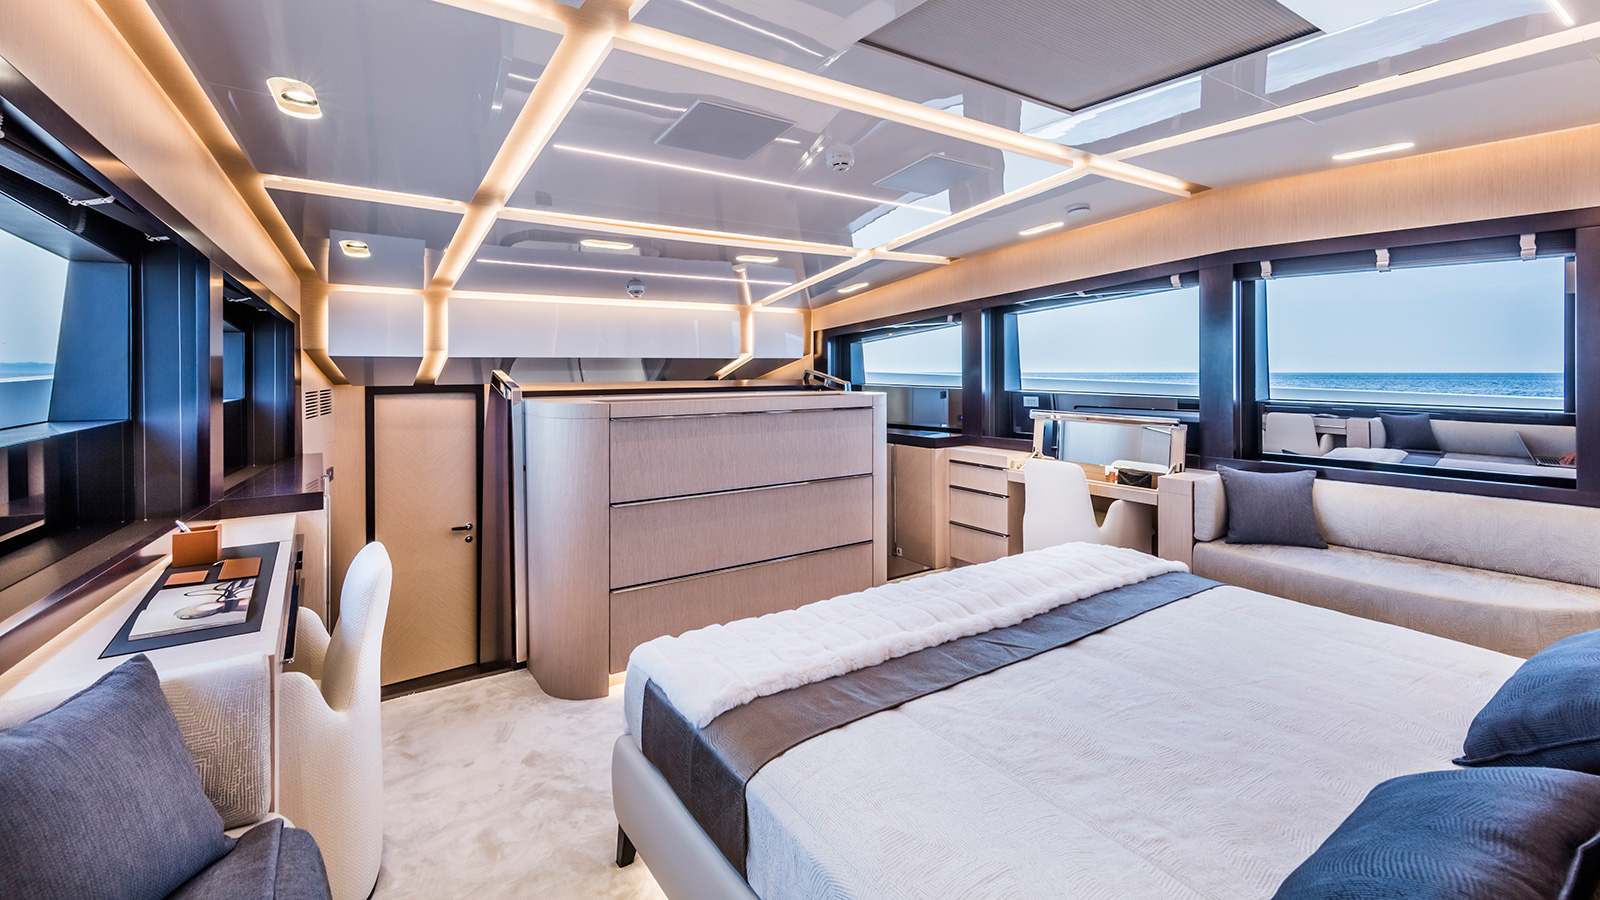 the-owners-cabin-of-the-isa-120-yacht-clorinda